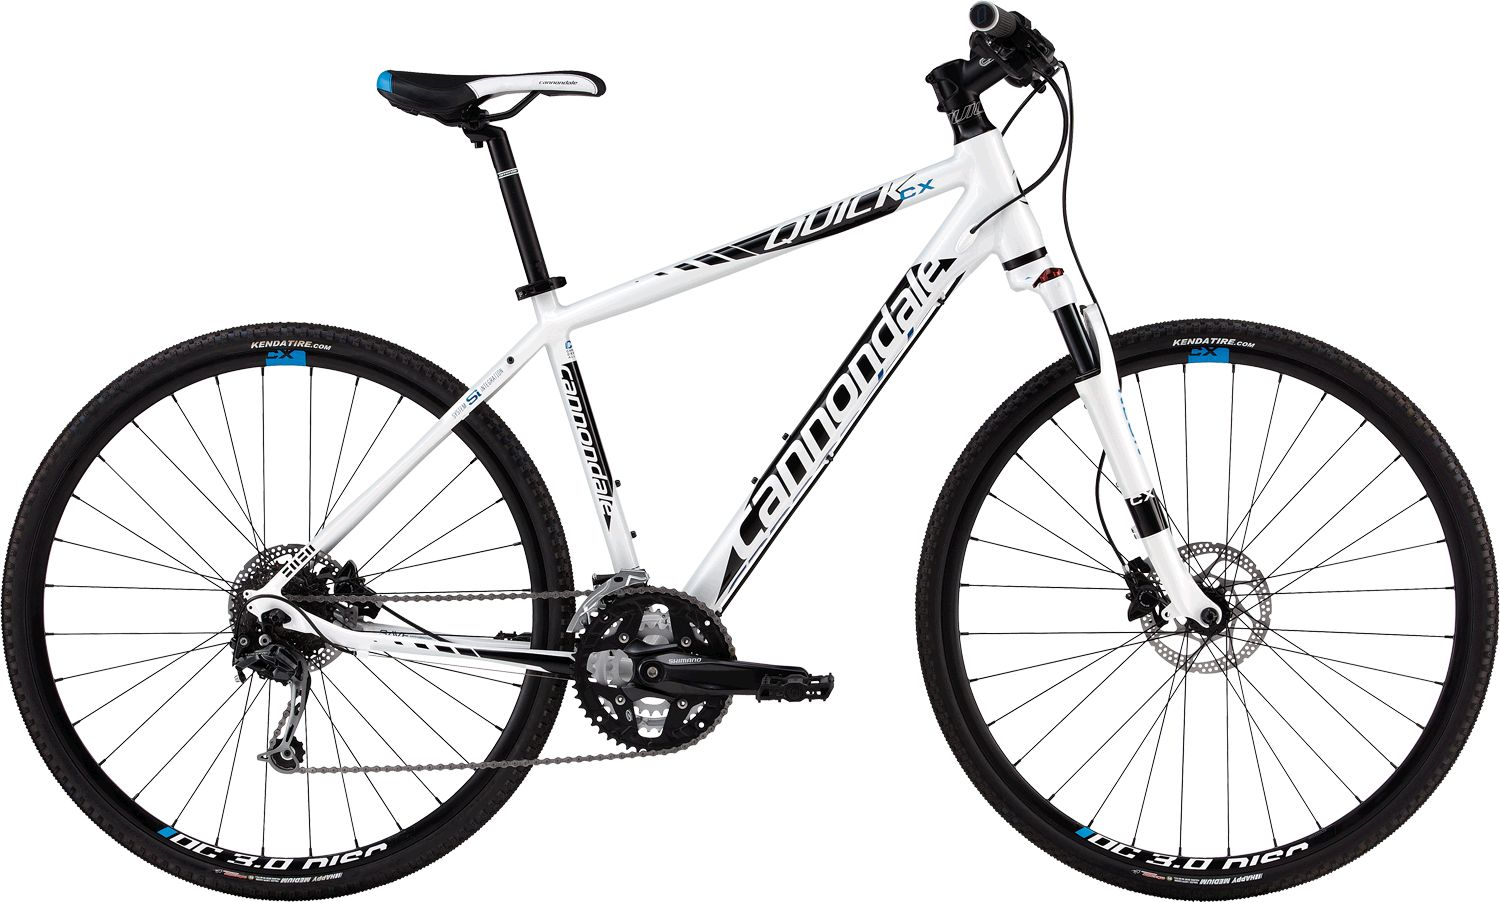 Cannondale 2013 models submited images